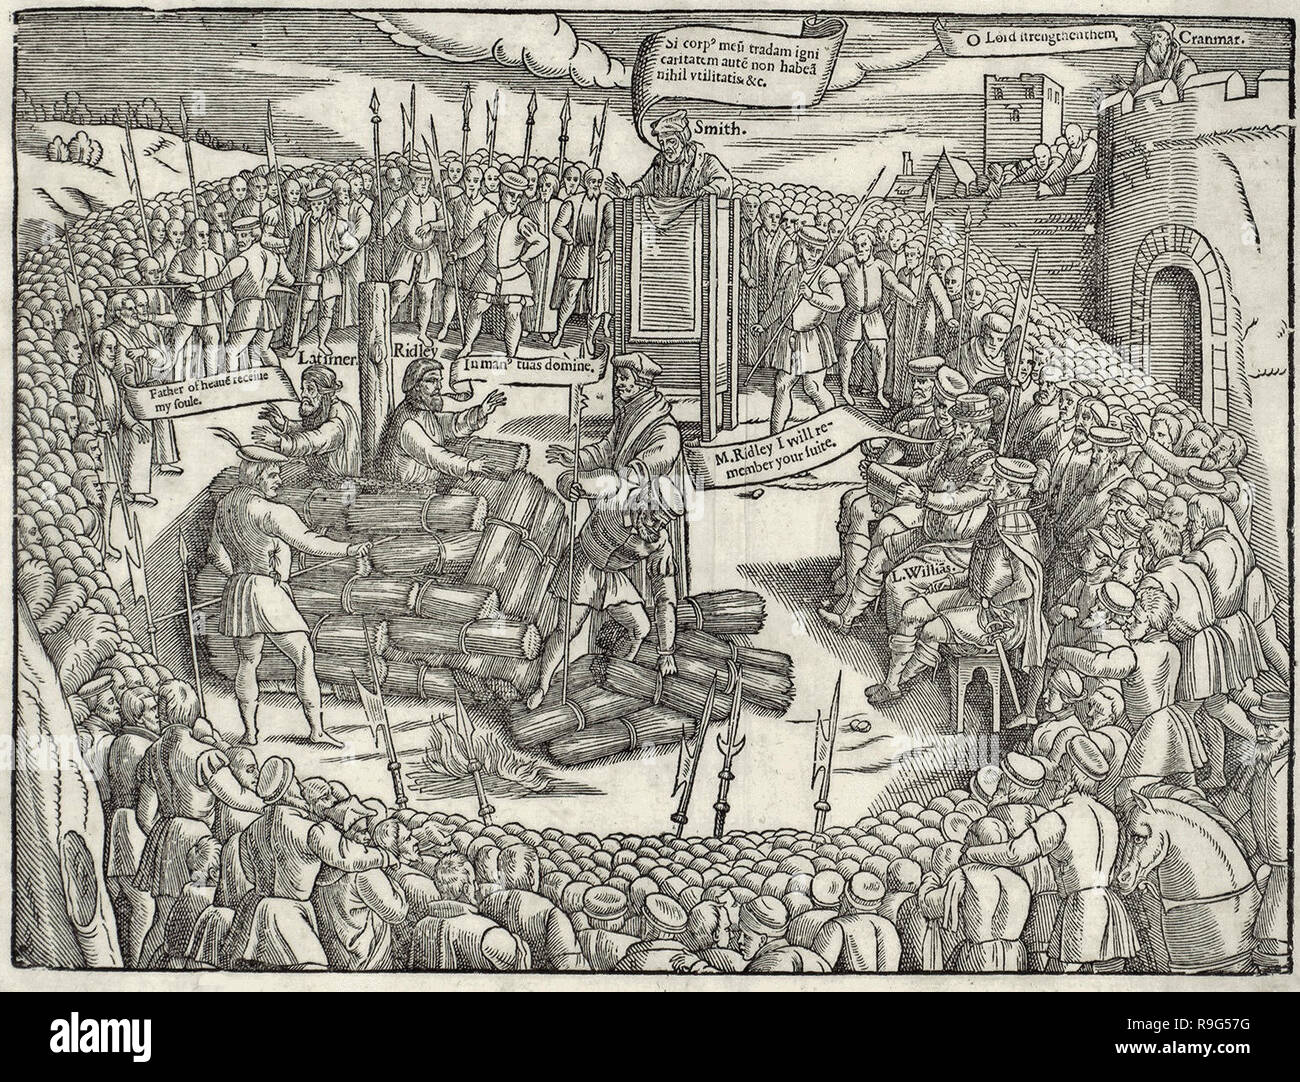 Hugh Latimer and Nicholas Ridley martyred by being burnt at the stake. - Stock Image